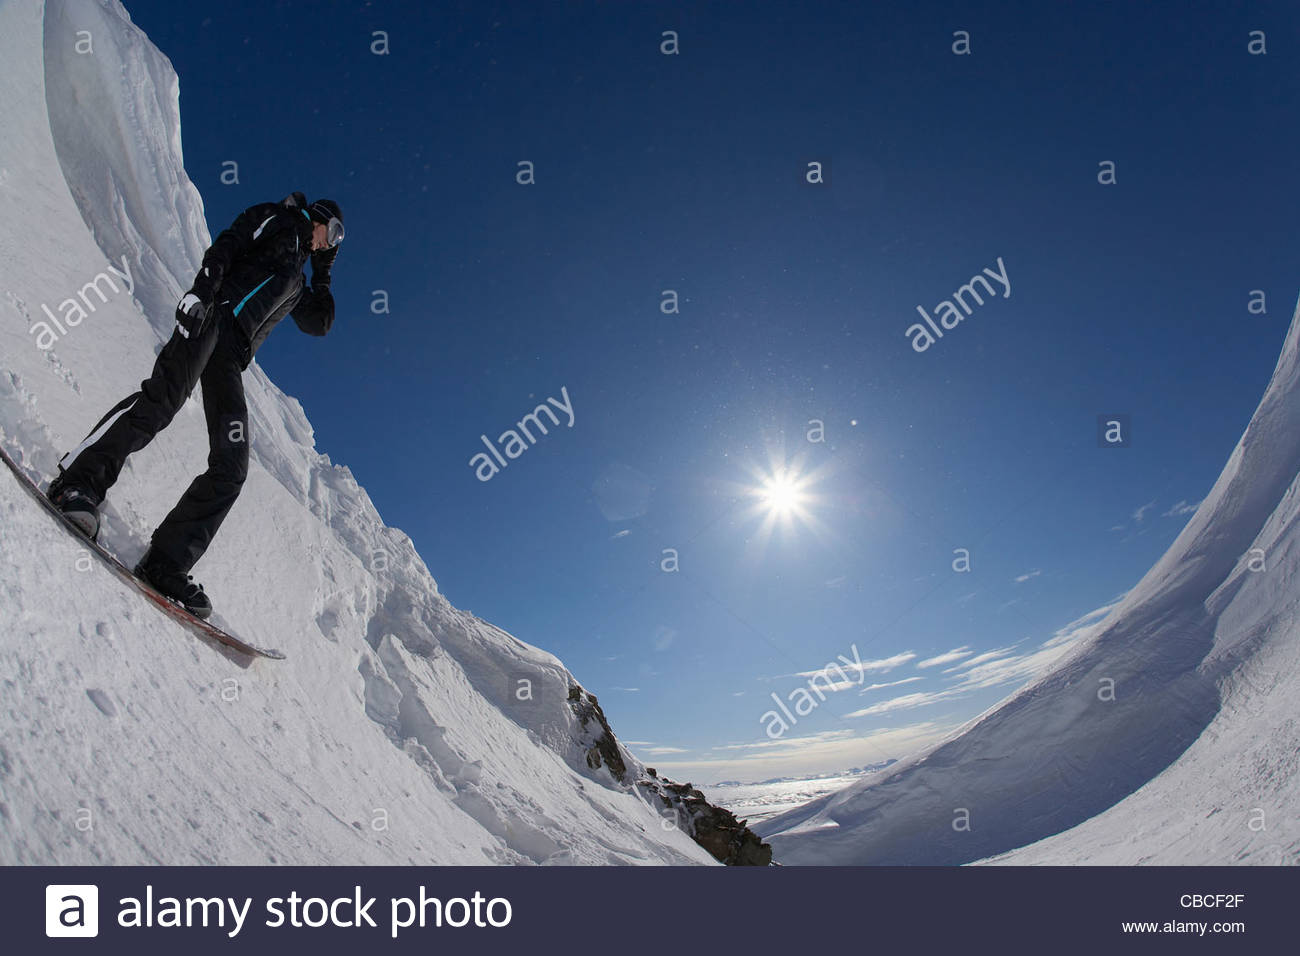 Snowboarder standing on slope - Stock Image